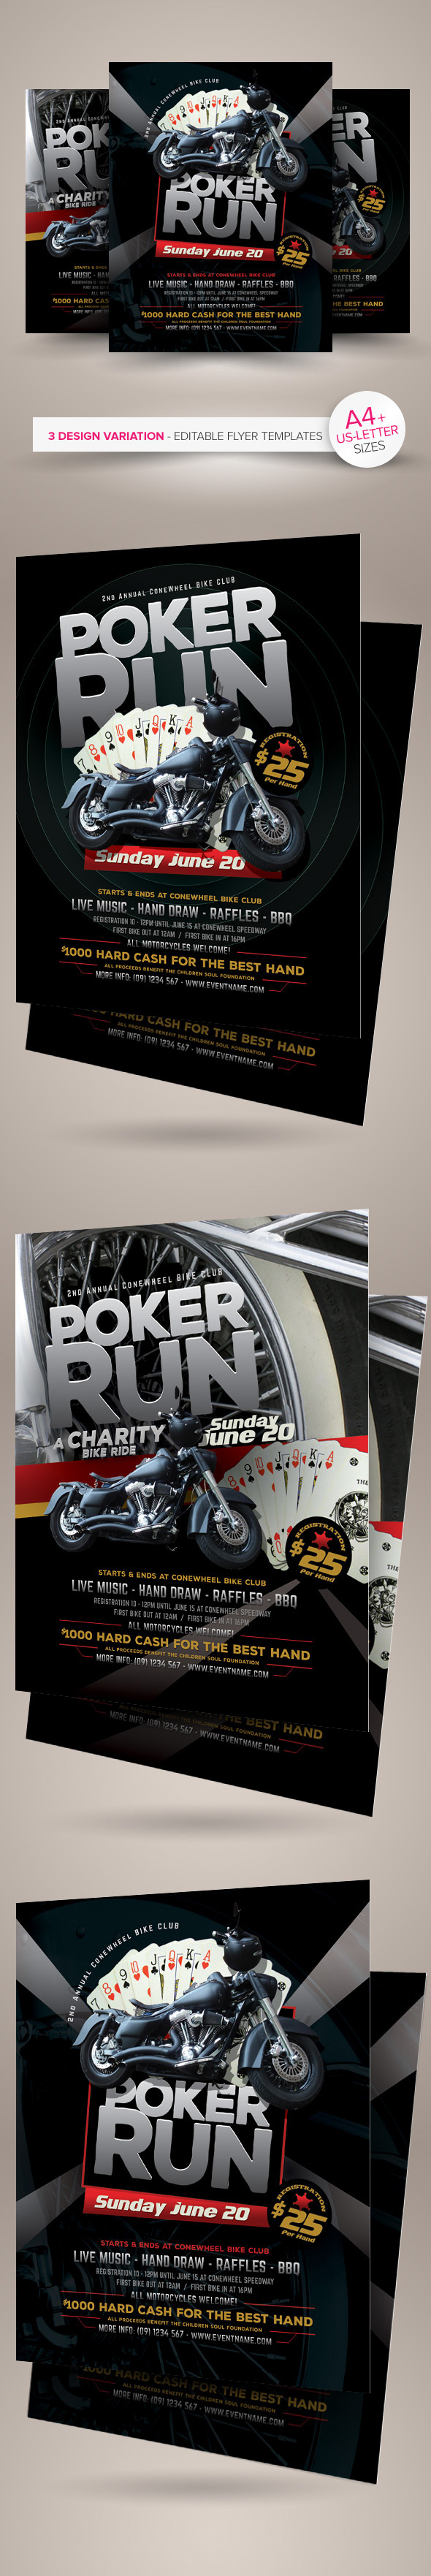 poker run flyer templates on behance poker run flyer templates are fully editable design templates created for on graphic river more info of the templates and how to get the sourcefile